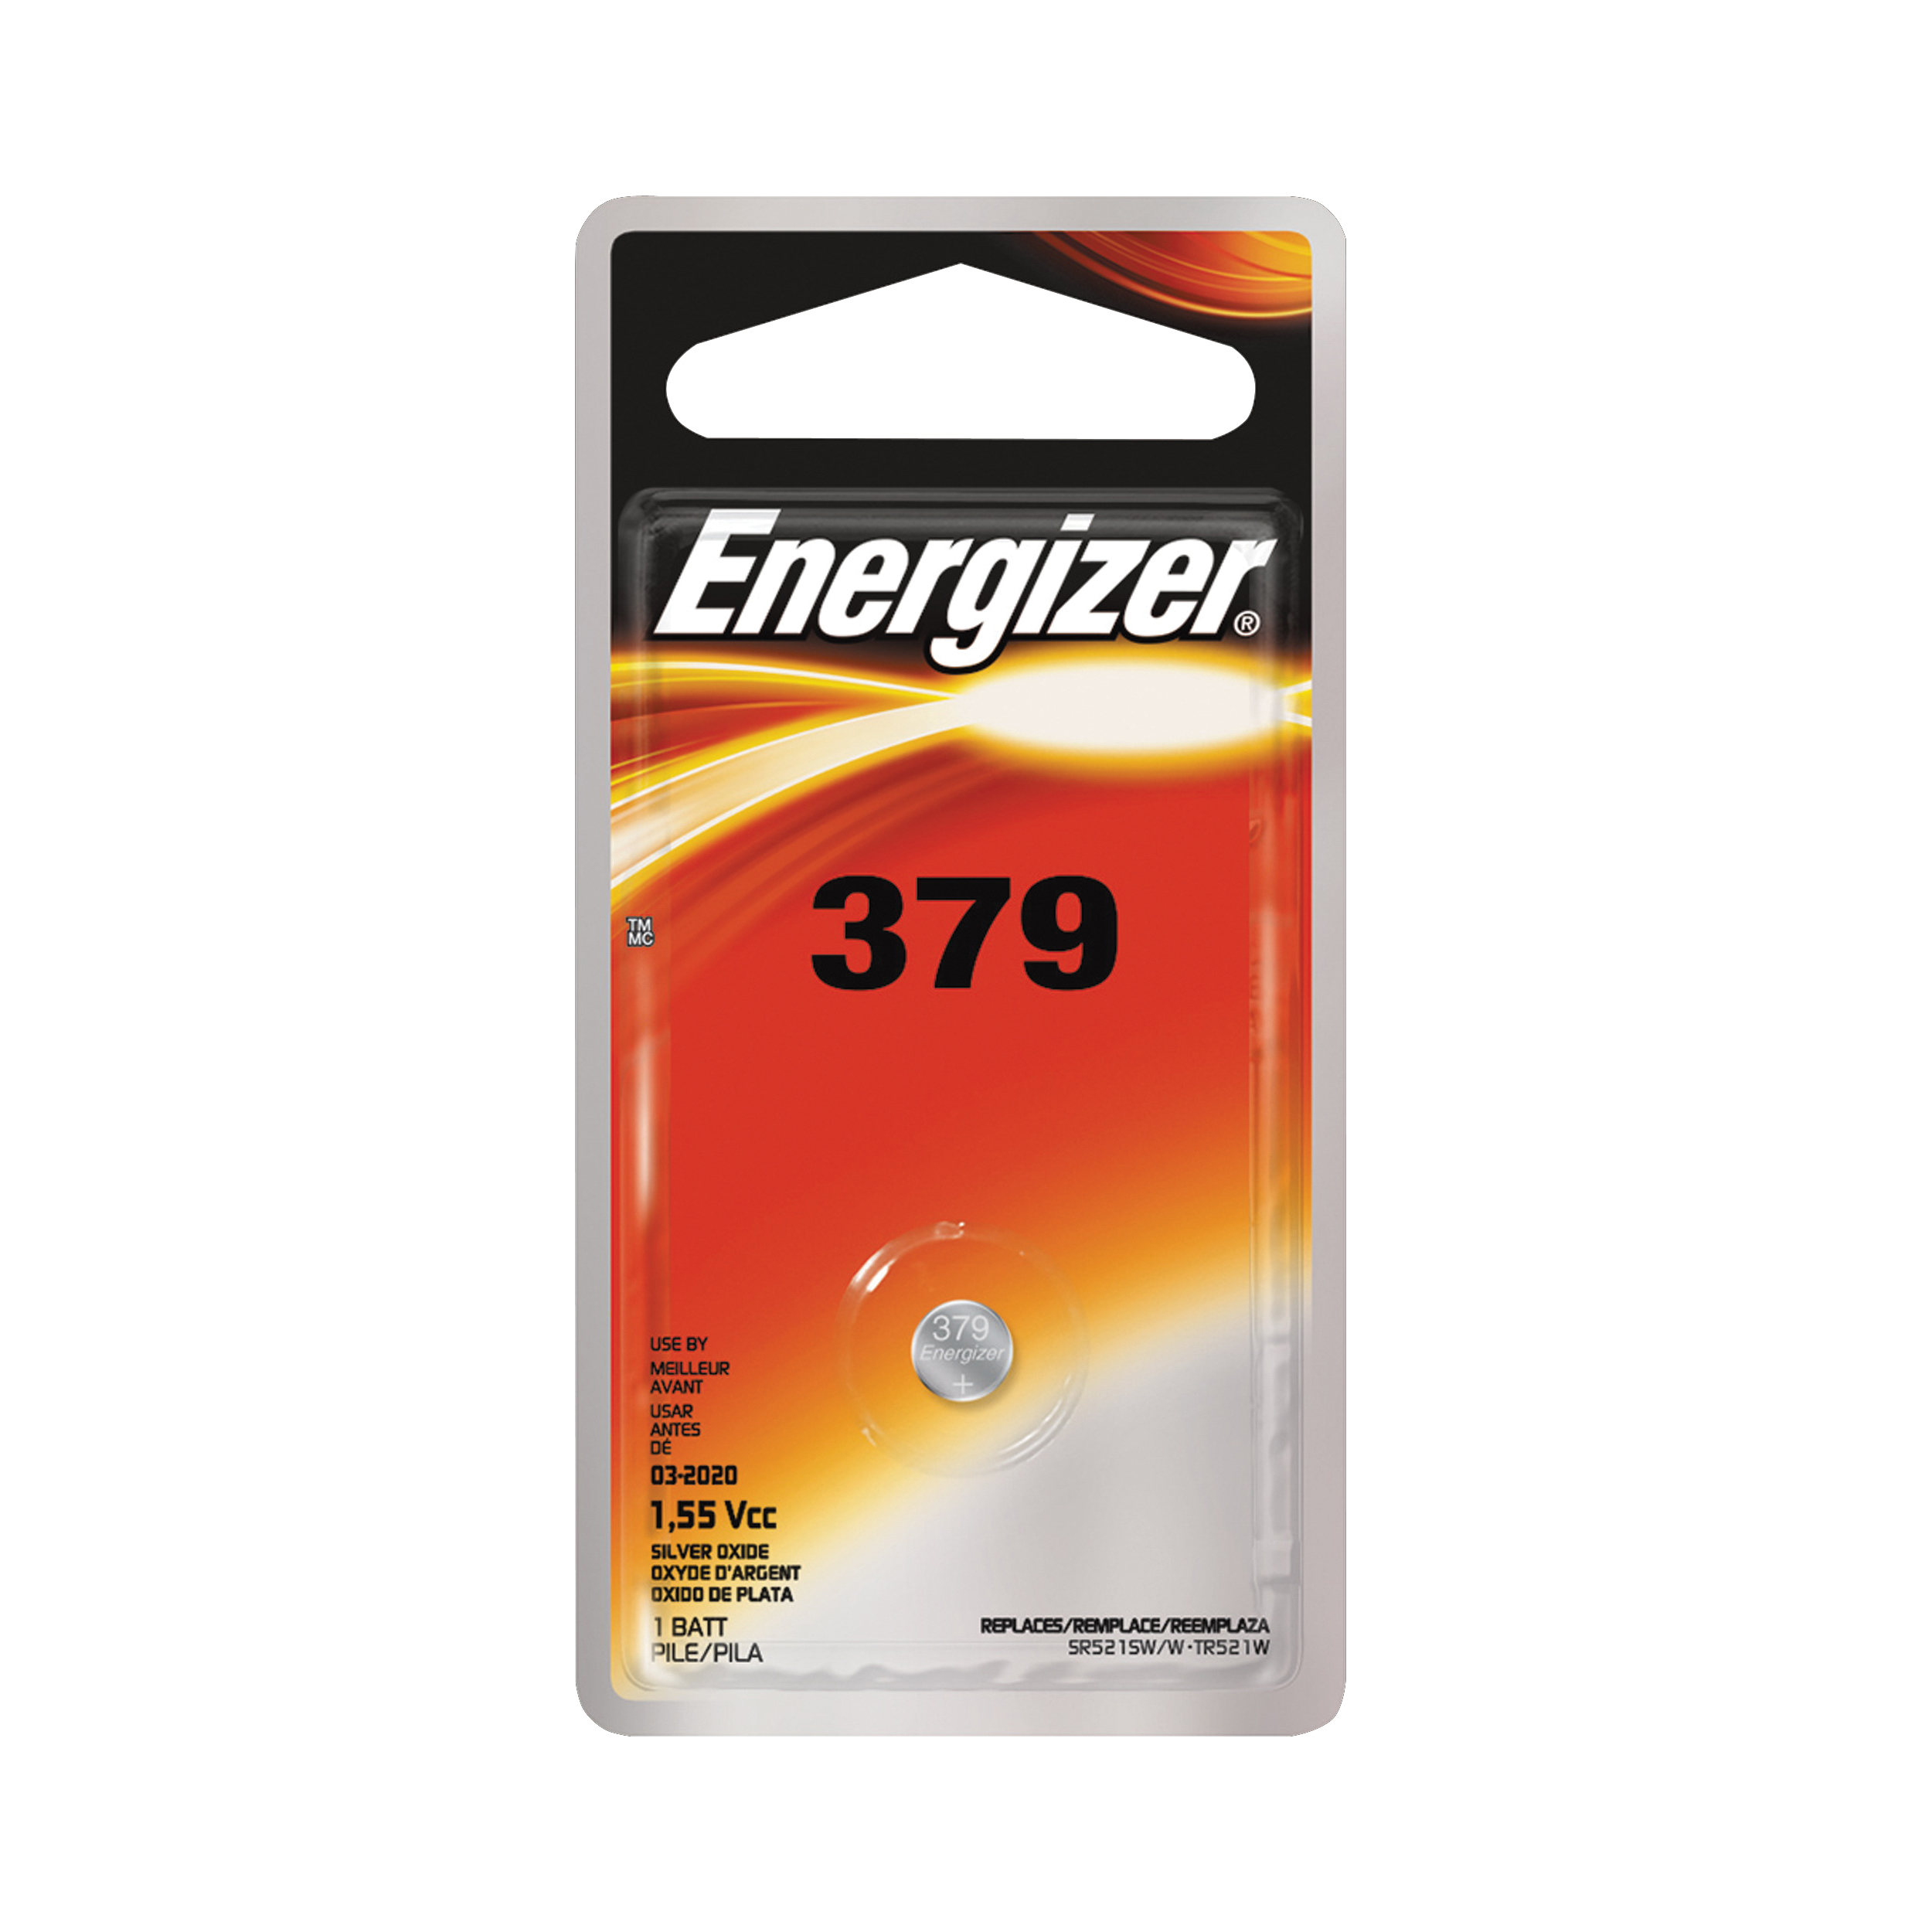 Picture of Energizer 379BPZ Coin Cell Battery, 1.5 V Battery, 14 mAh, 379 Battery, Silver Oxide